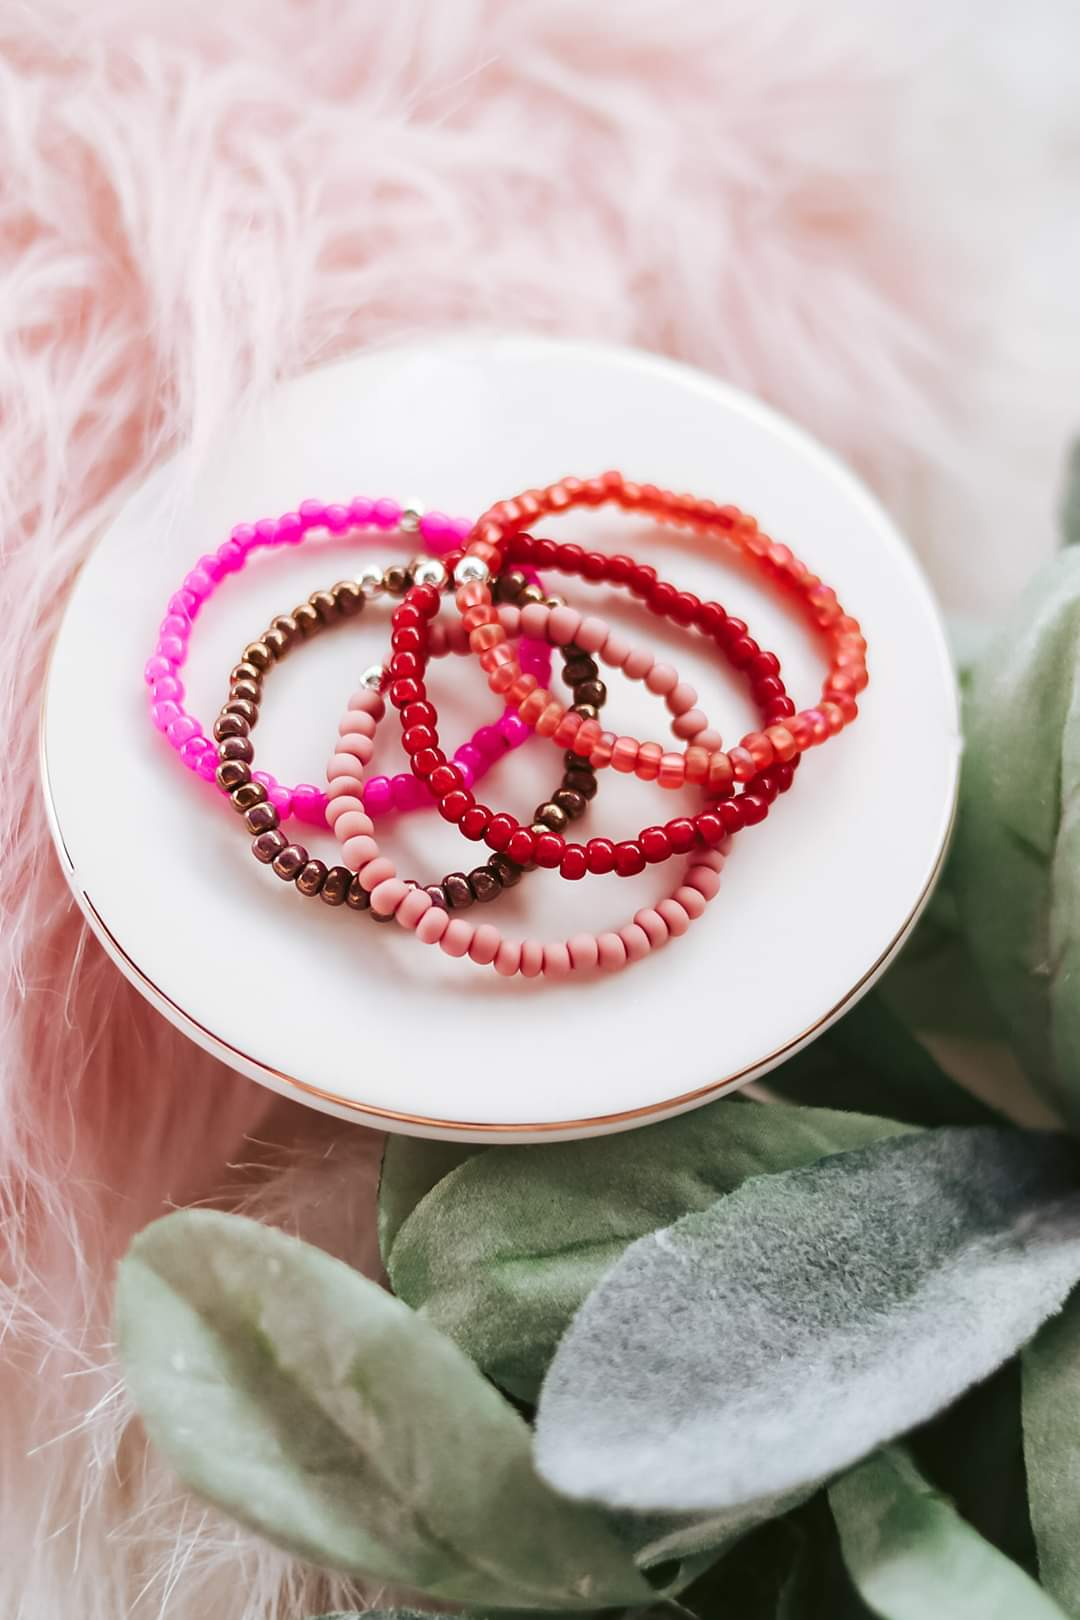 Wholesale Seed Bead Bracelets (Children's Sizes)